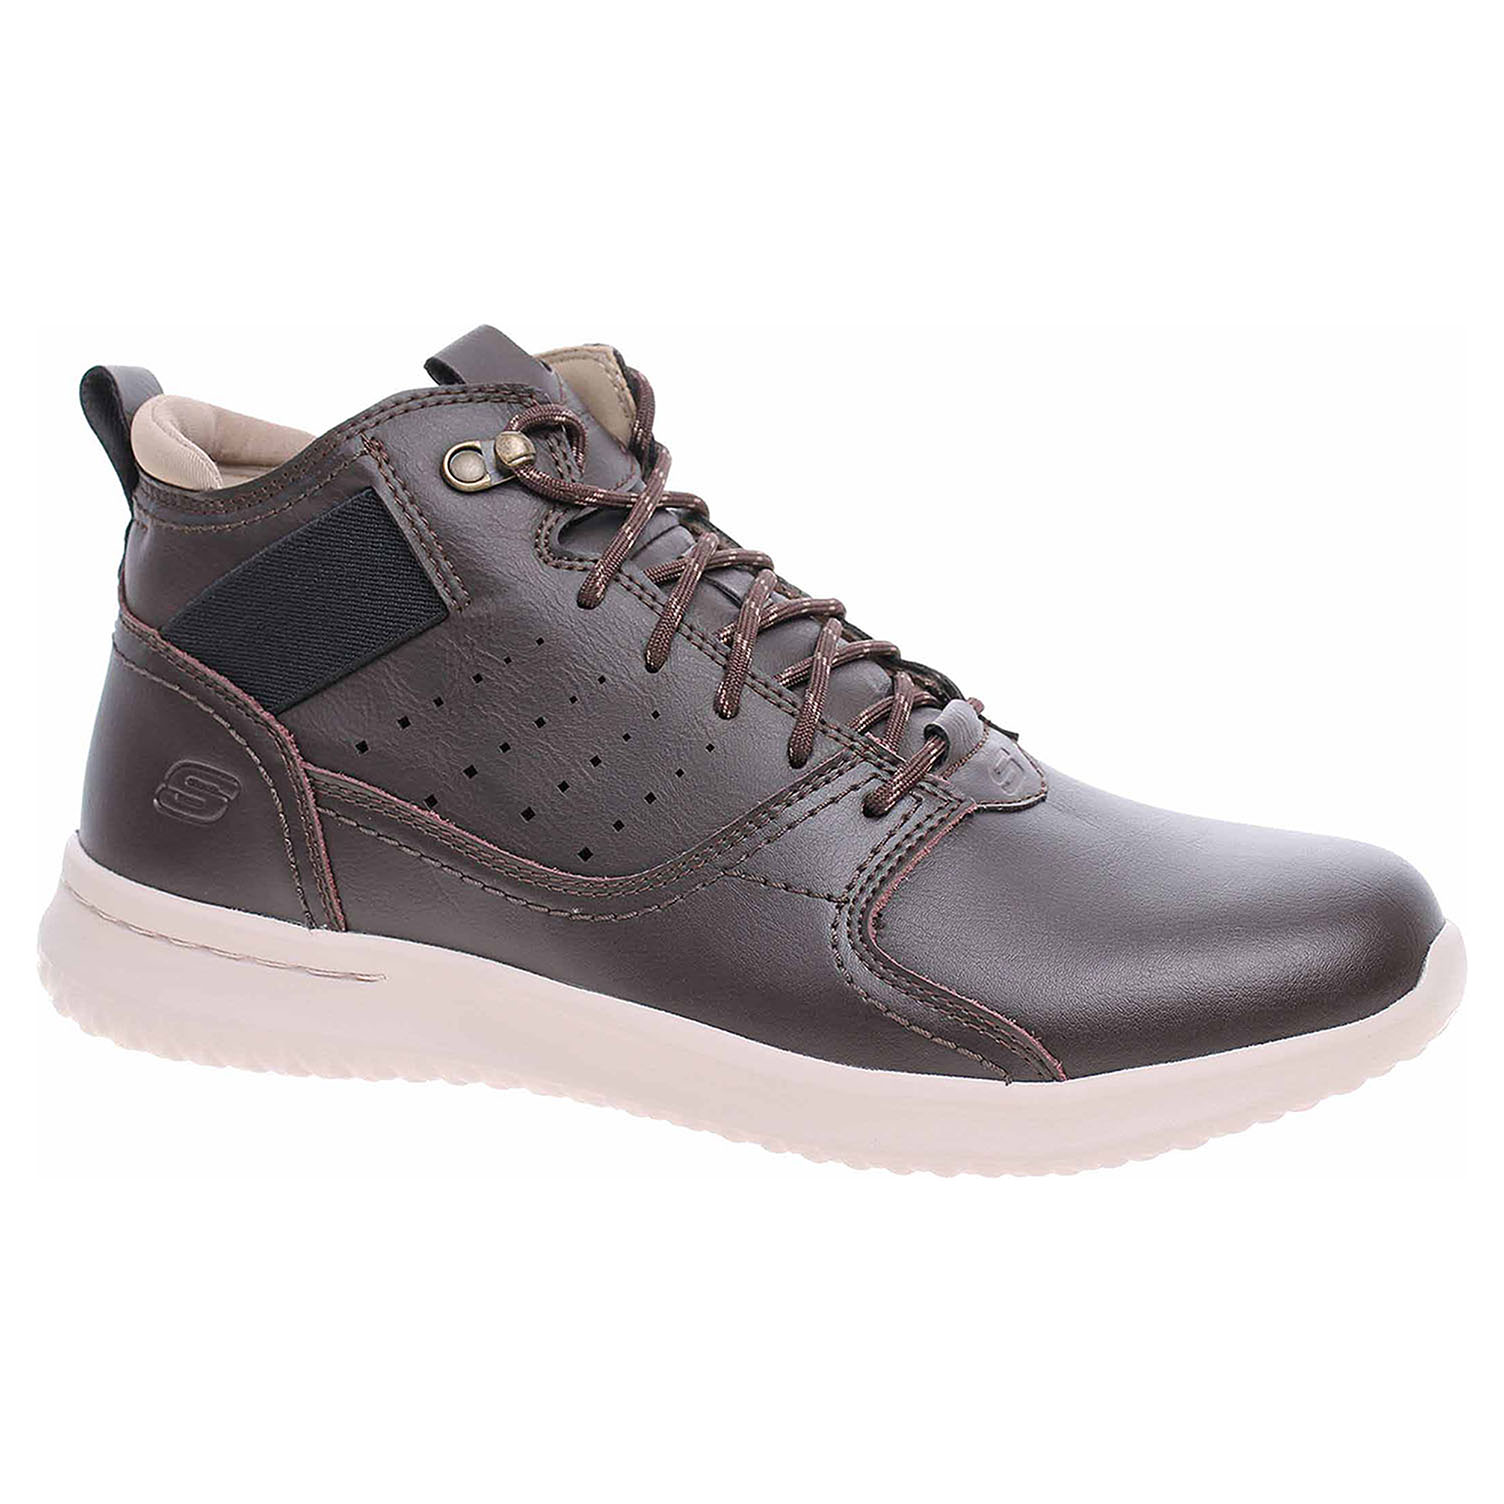 Skechers Delson - Venego chocolate